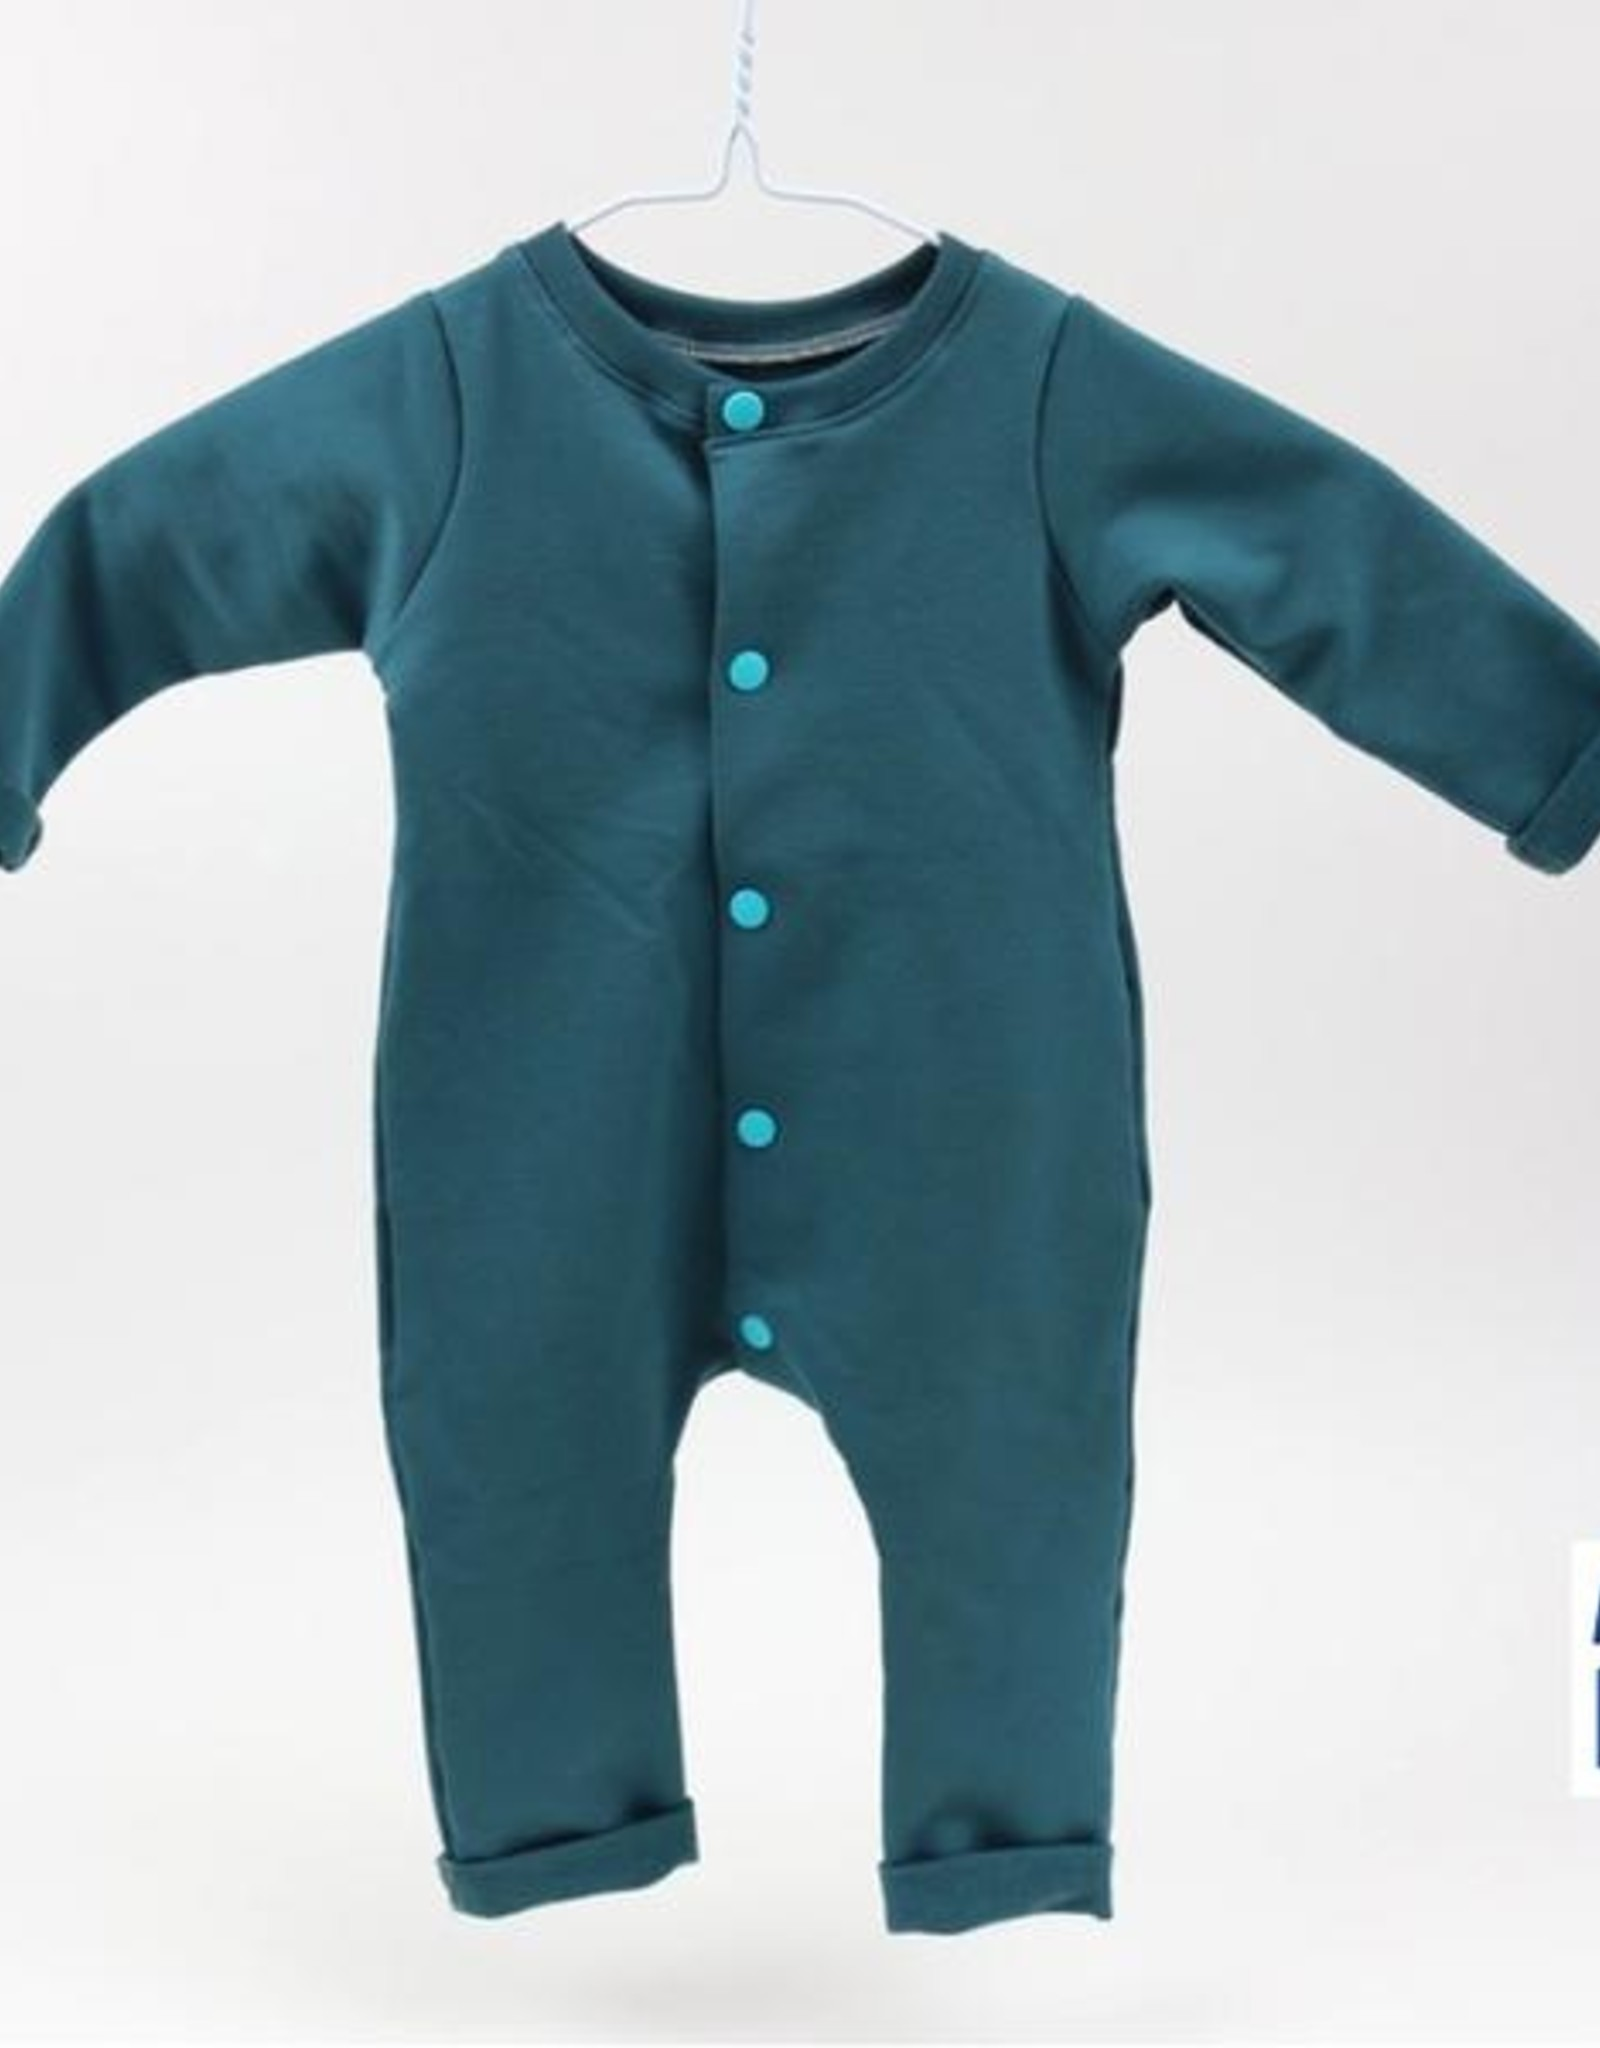 About Blue Fabrics French Terry Uni 16 Blue Wing Teal